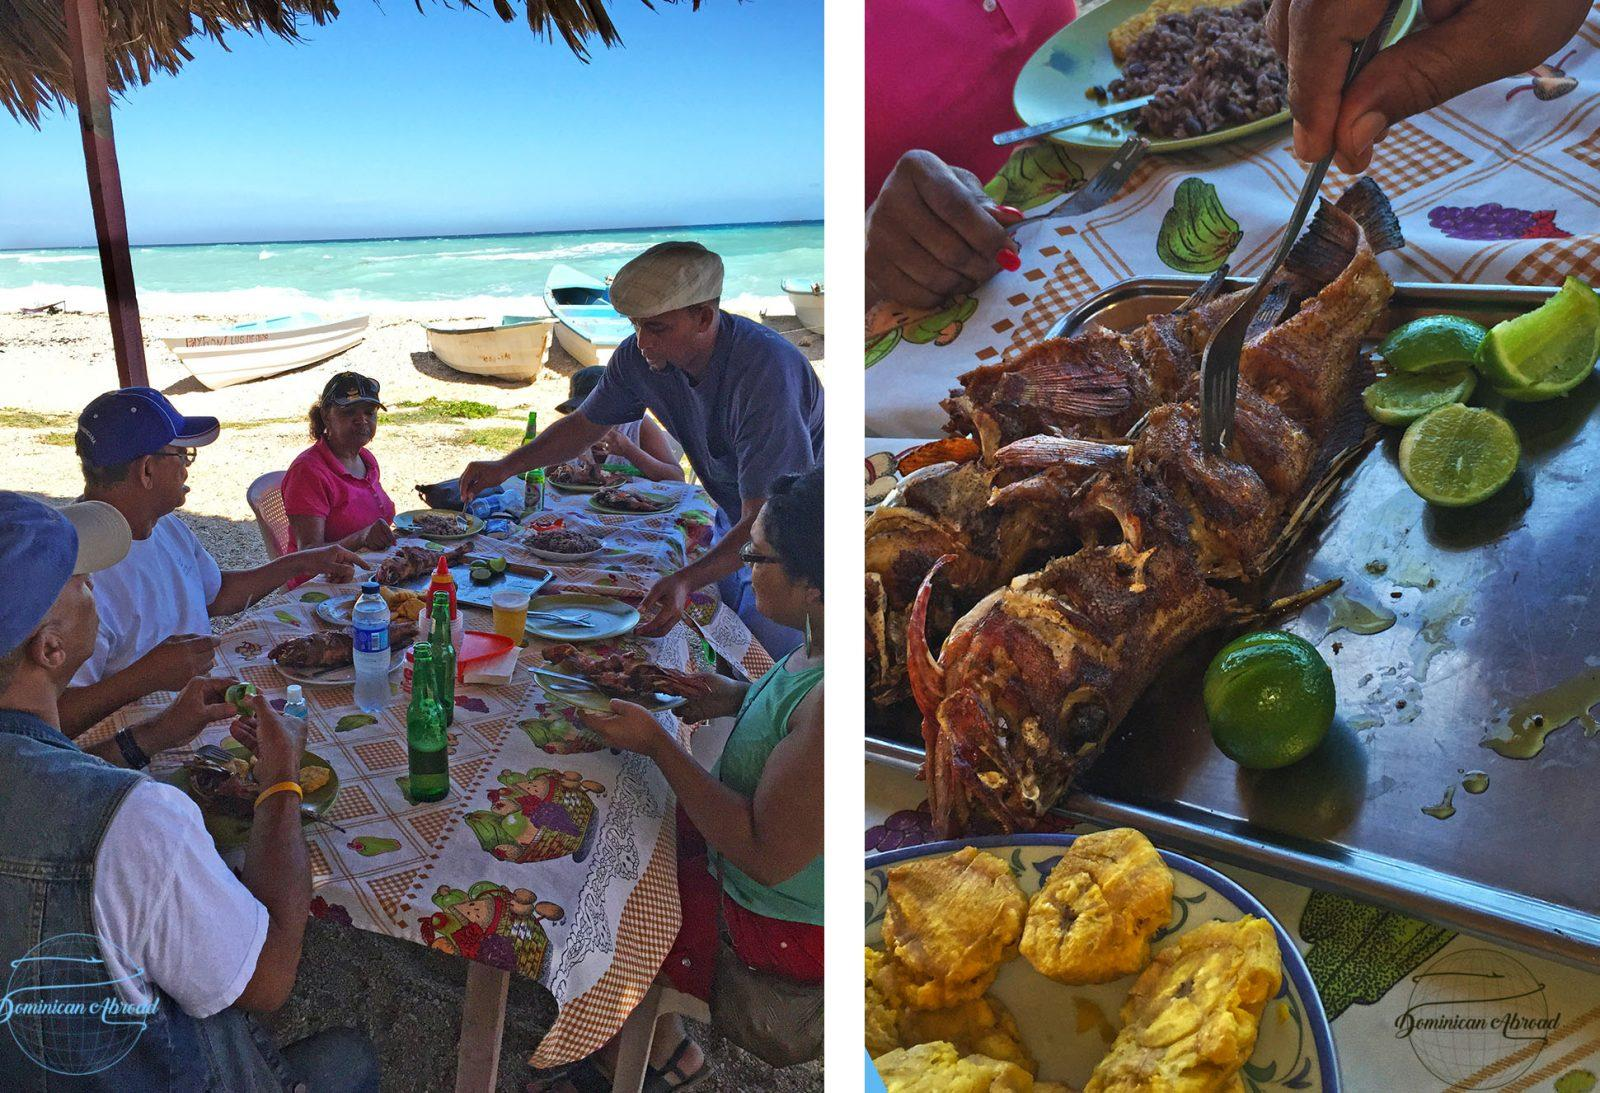 Eating a seafood feast at Kathy's restaurant on Los Patos Beach.